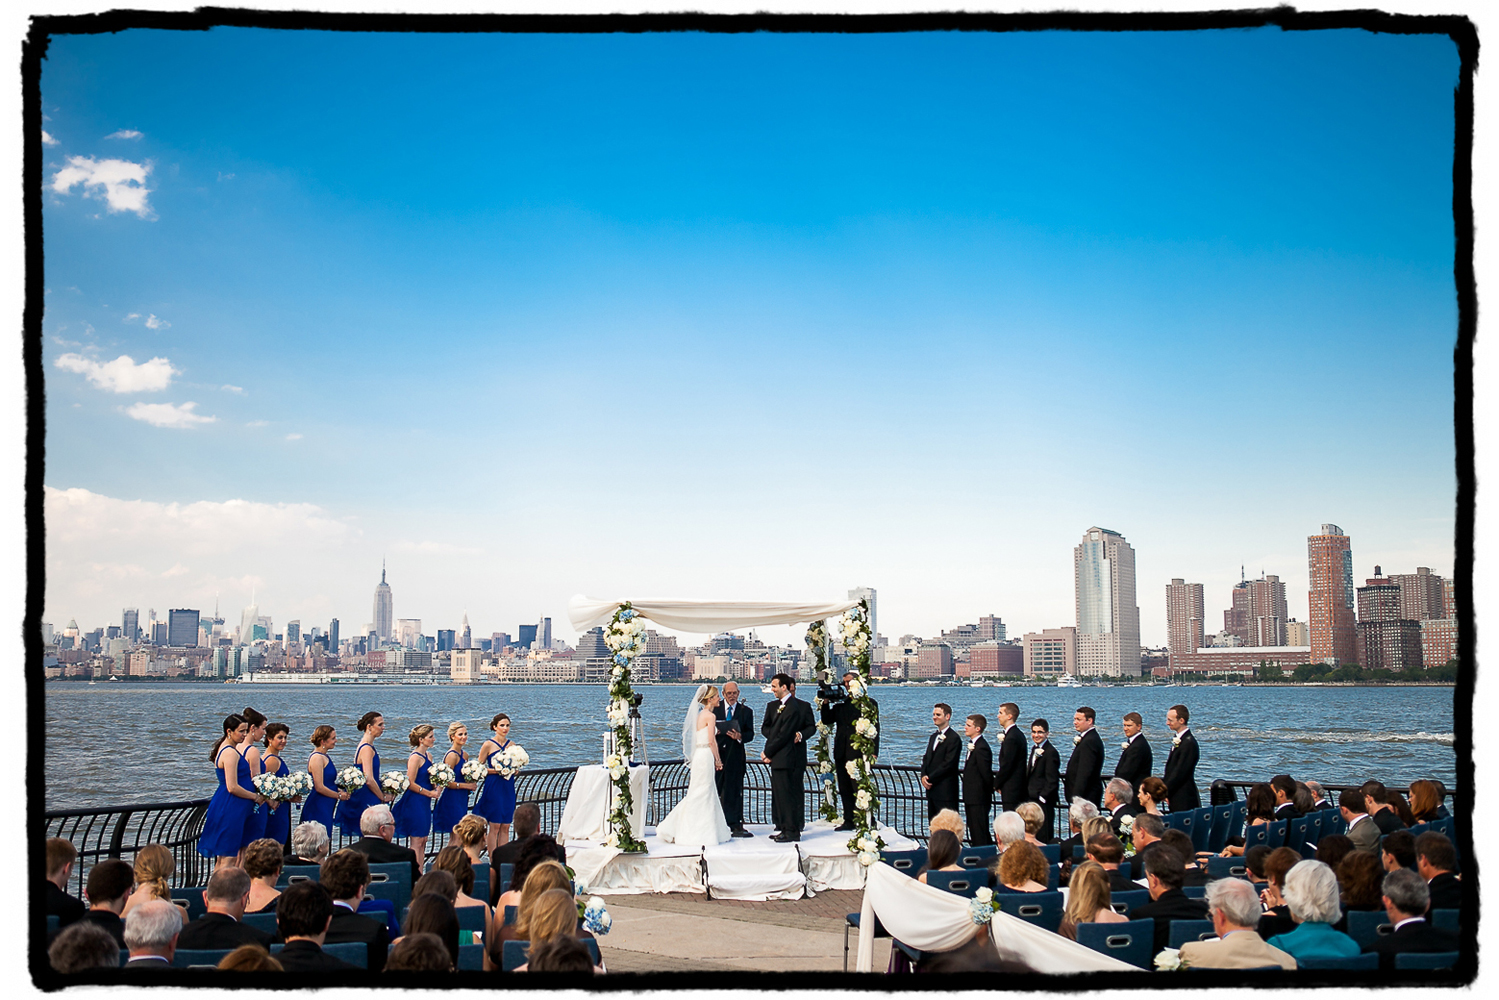 Gena & Josh's guests were treated to a stunning view across the hudson river at The Hyatt in Jersey City.